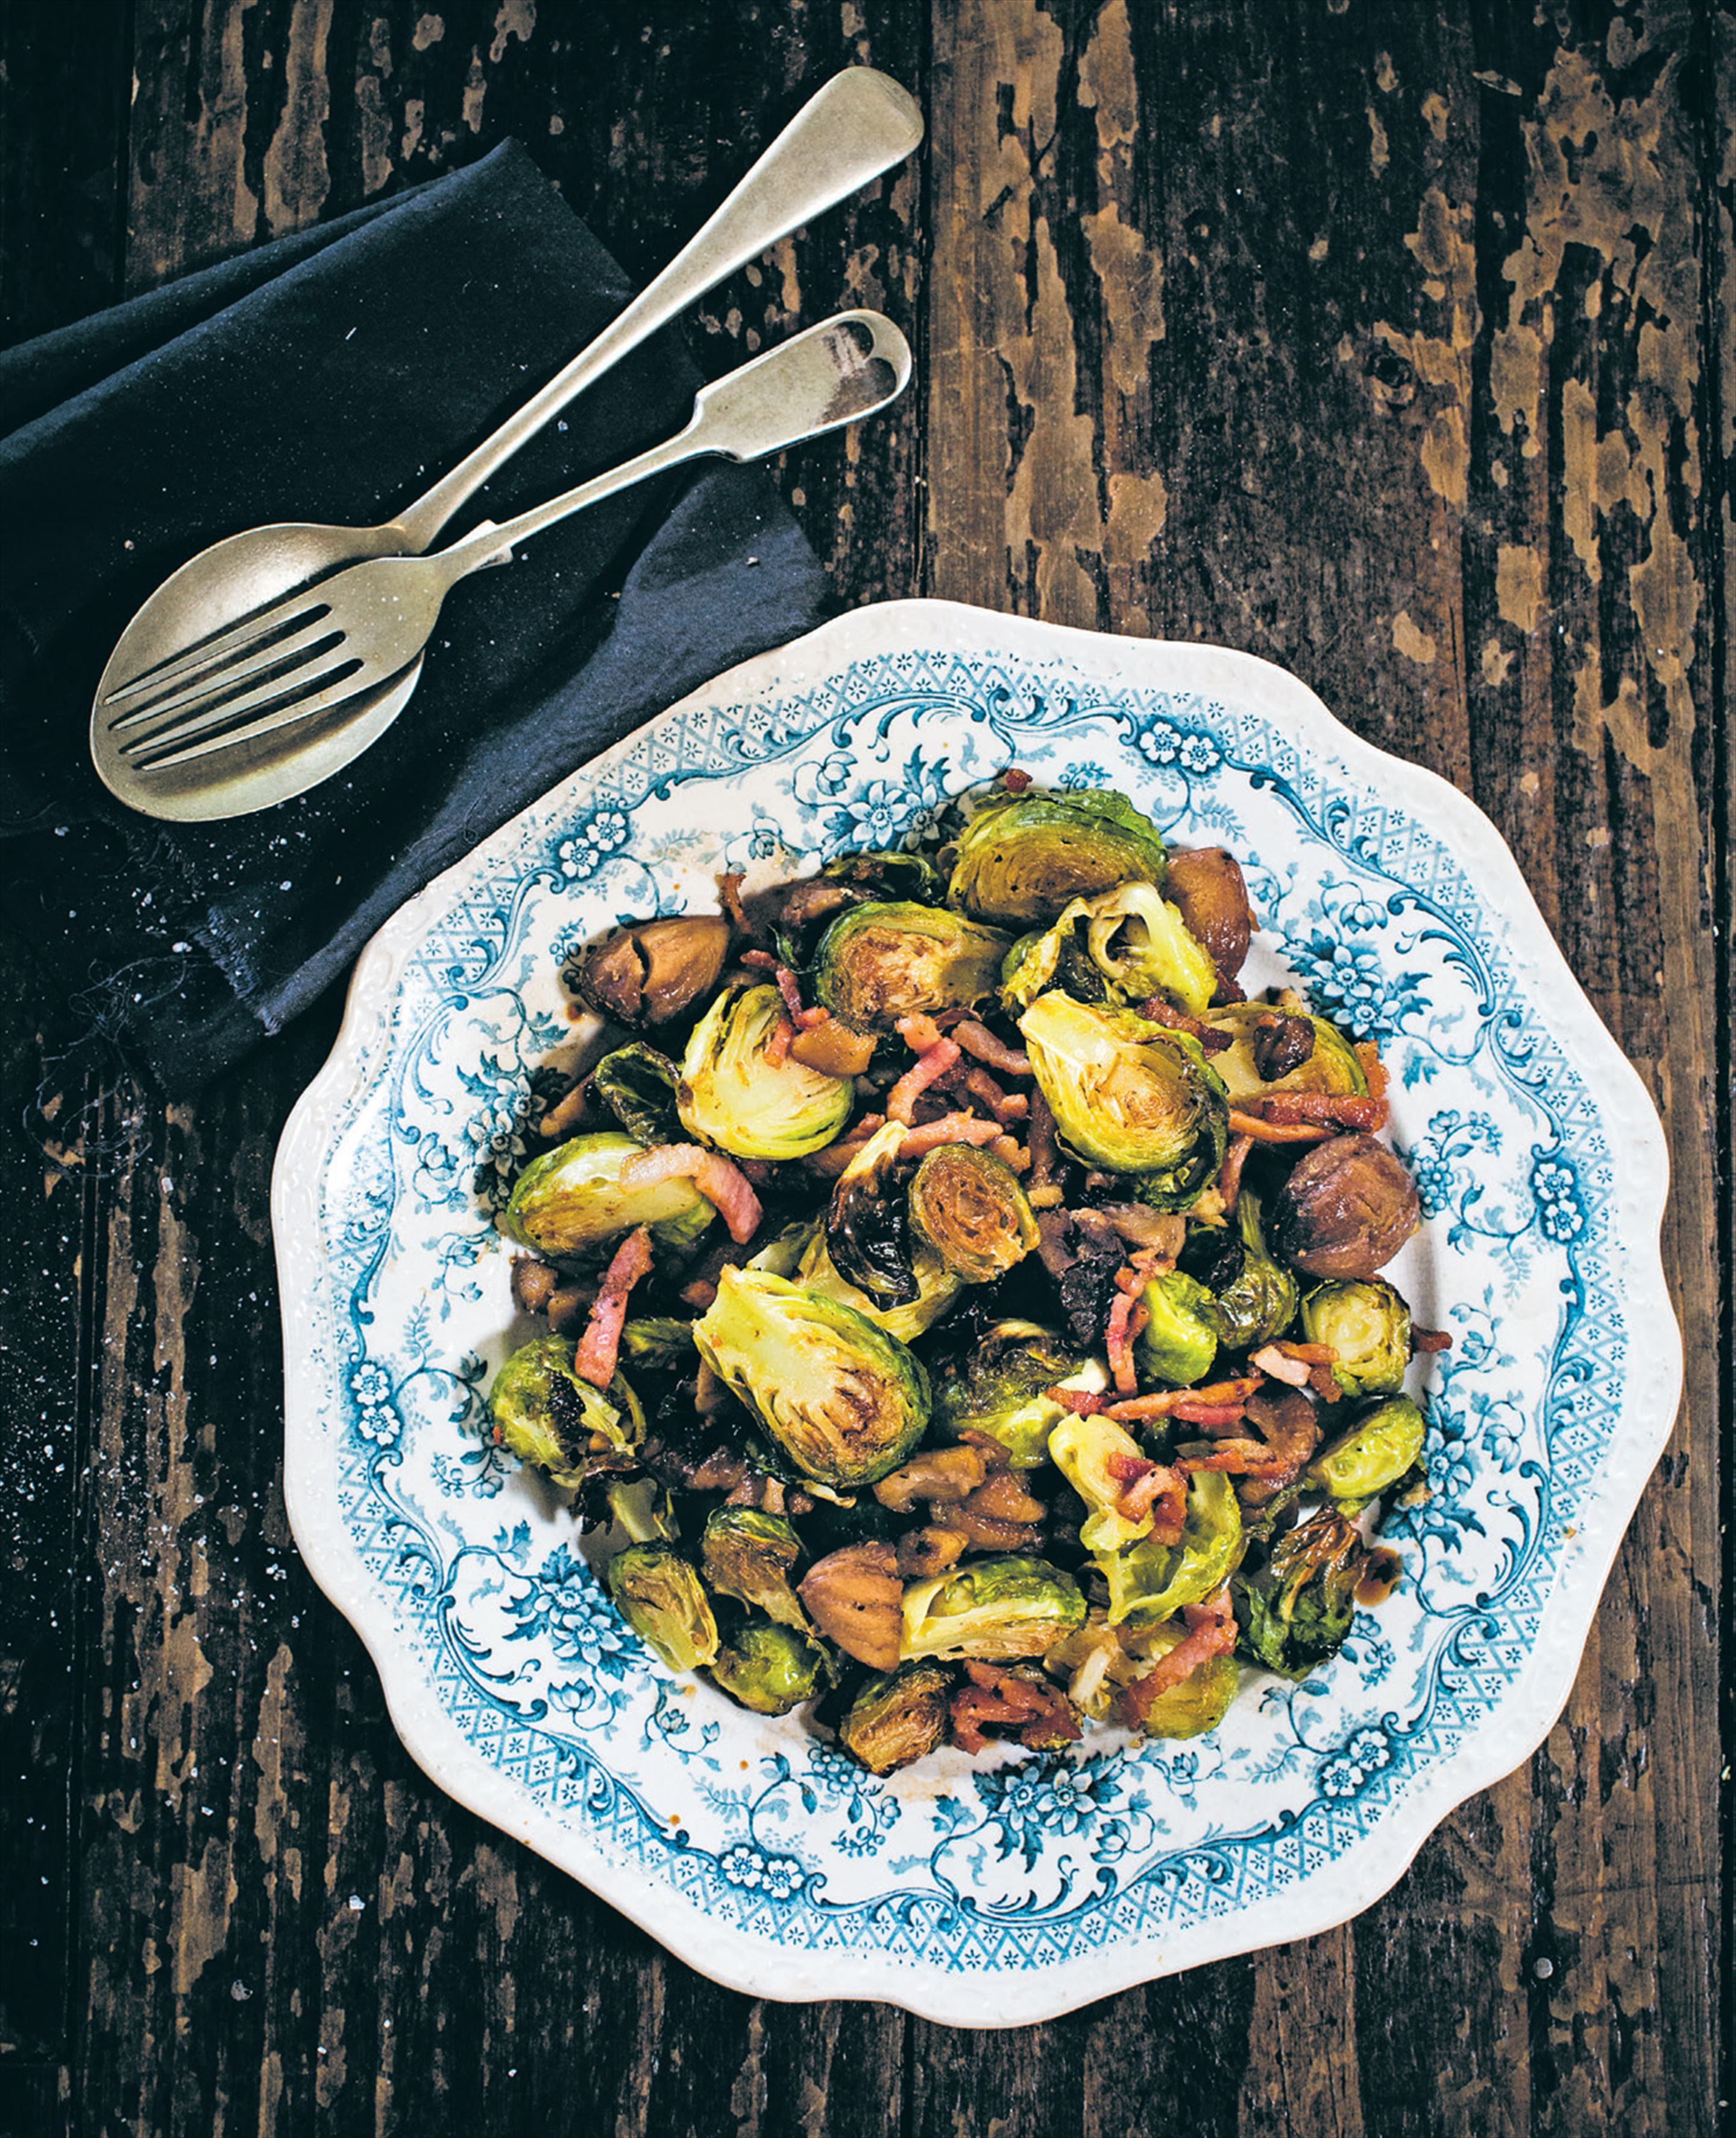 Roasted balsamic brussels sprouts, chestnuts and bacon